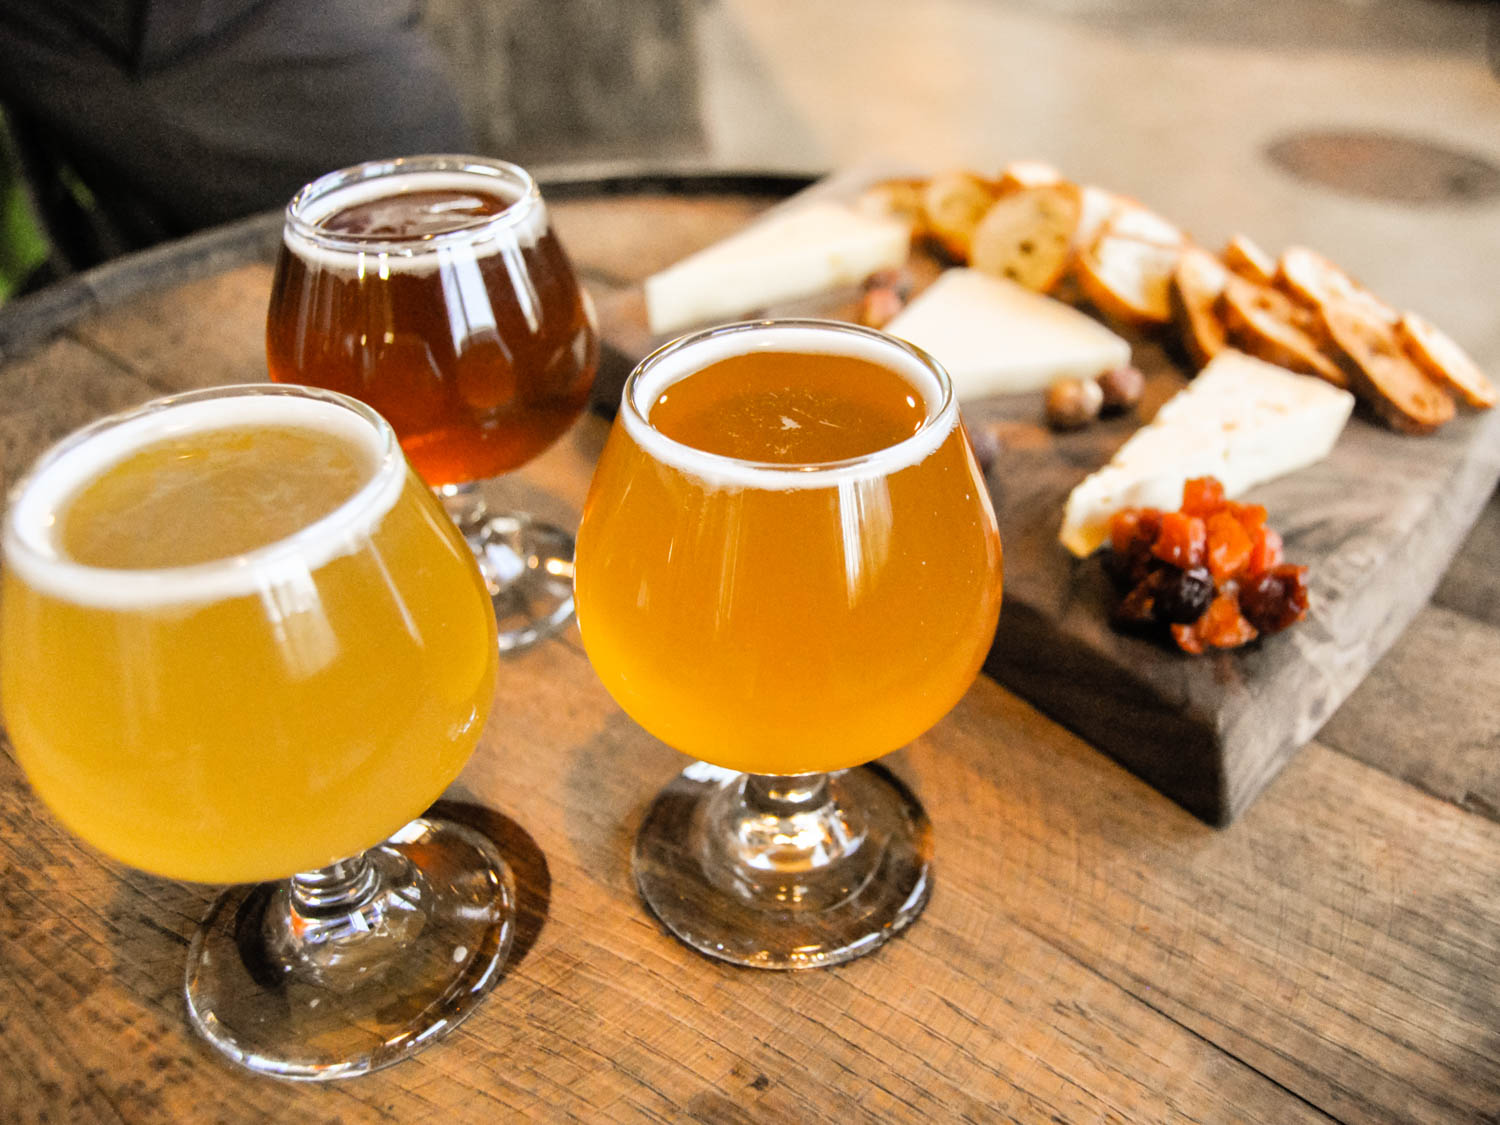 Sour Beer Brewing & Speciality Beer Brewing Course